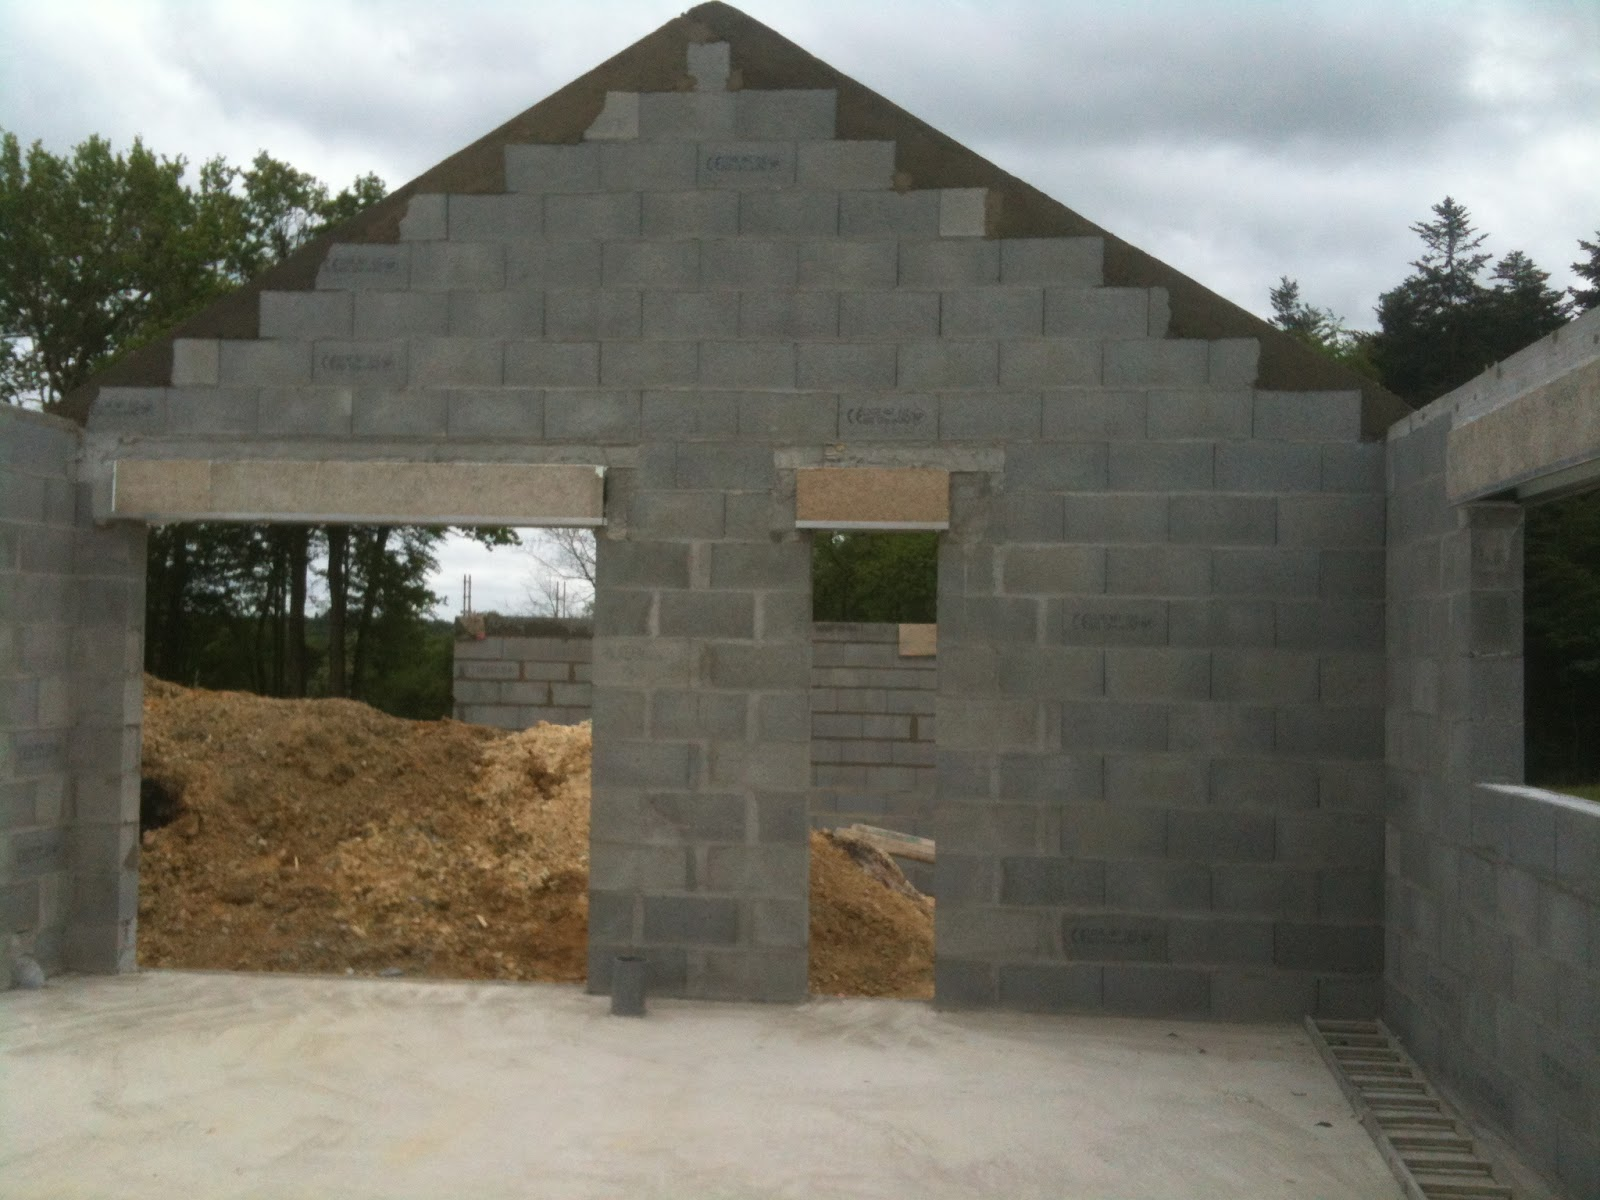 Depreux construction r cit d 39 une construction en 2013 for La finition d une maison